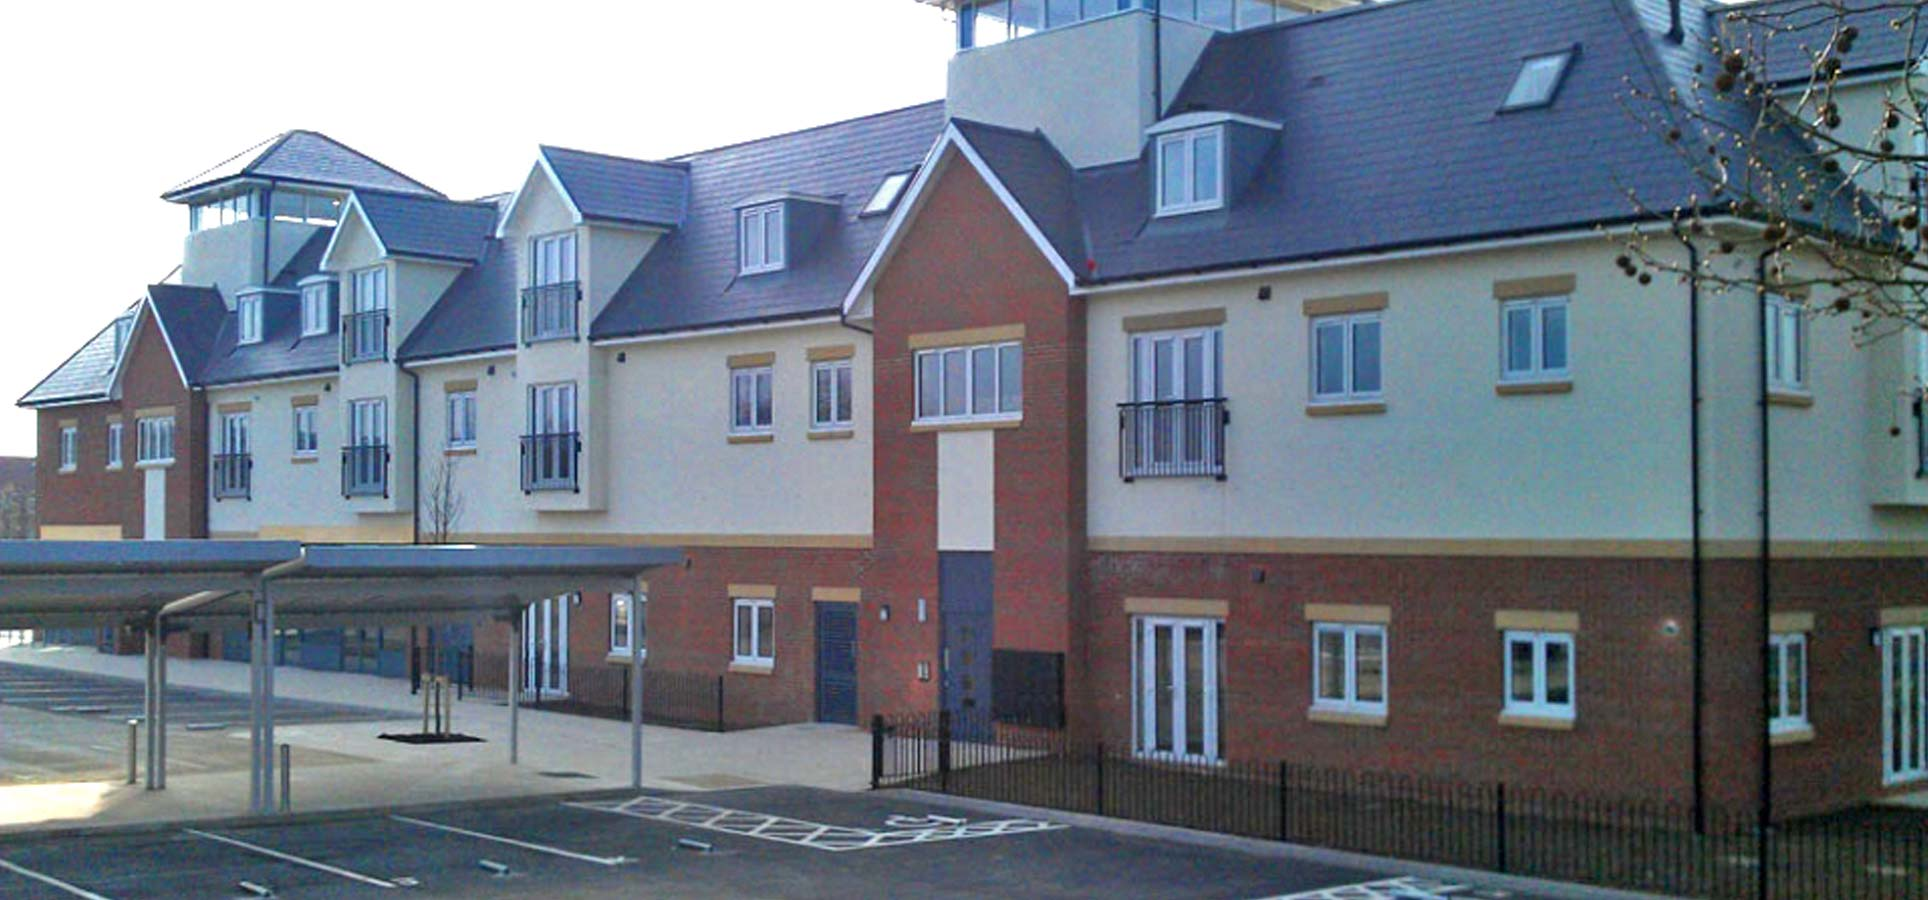 Apartments & Retail Units, Rayleigh, Jessops Construction Ltd